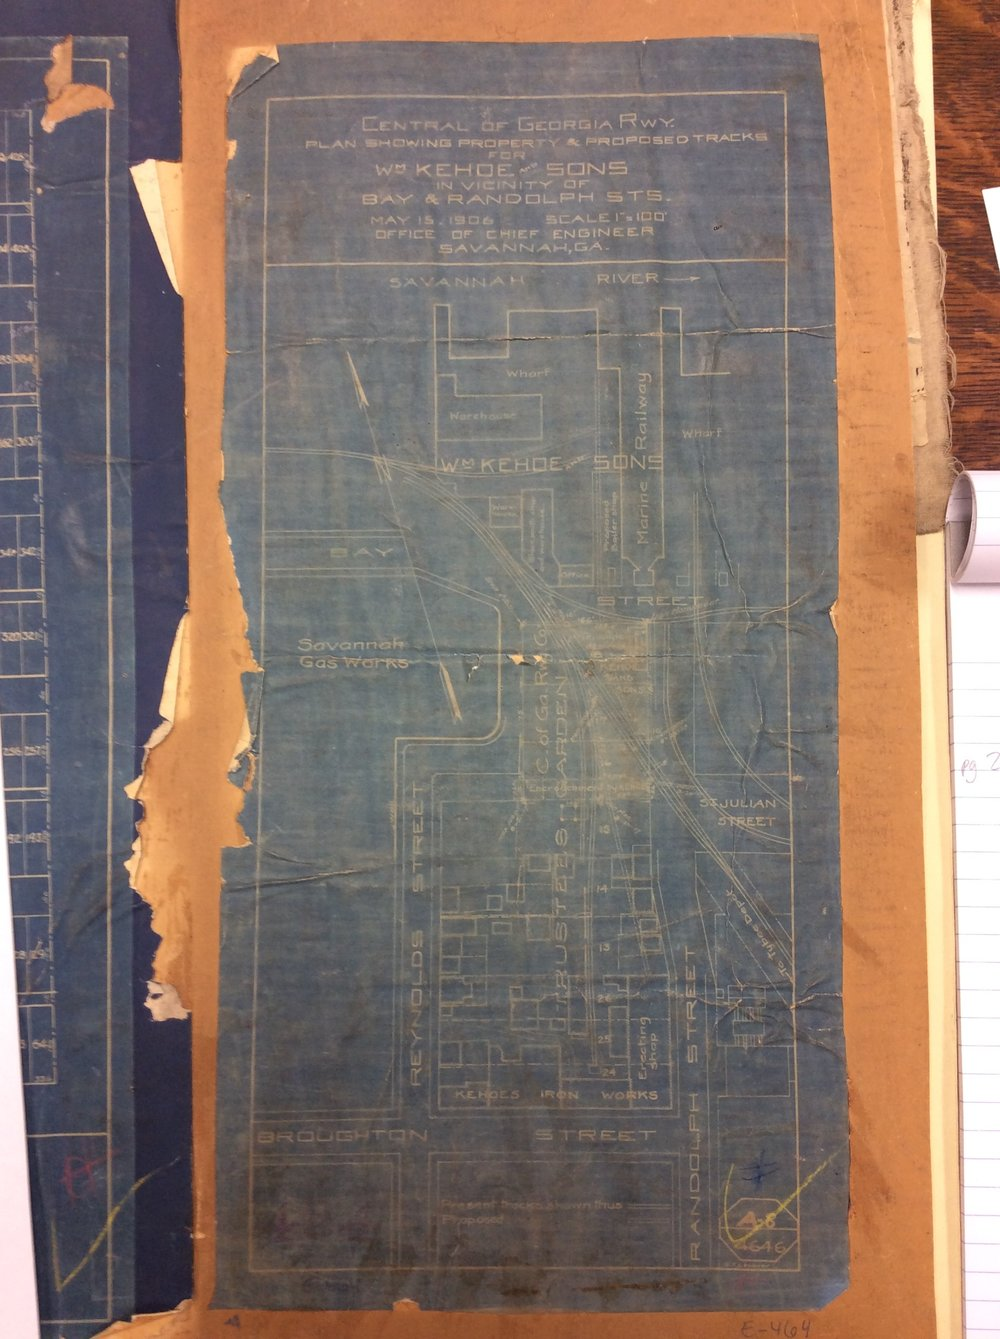 """Blueprint of Kehoe Iron Works."" (1906). East/West Maps, City of Savannah Municipal Archives and Research Library, Savannah, Georgia."